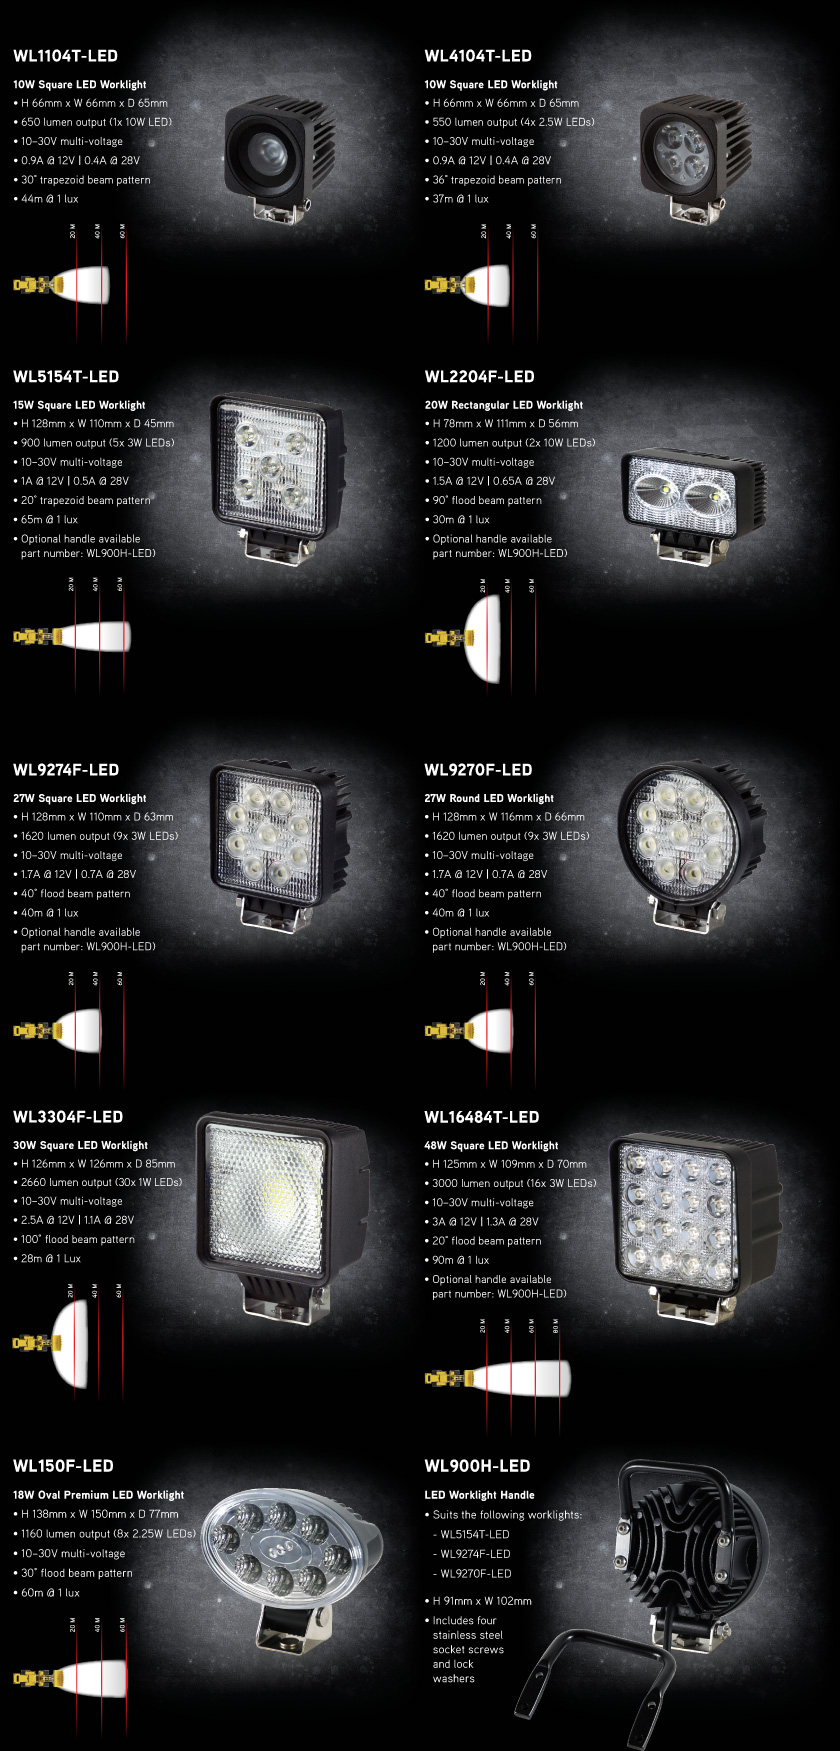 xray-vision-led-worklights